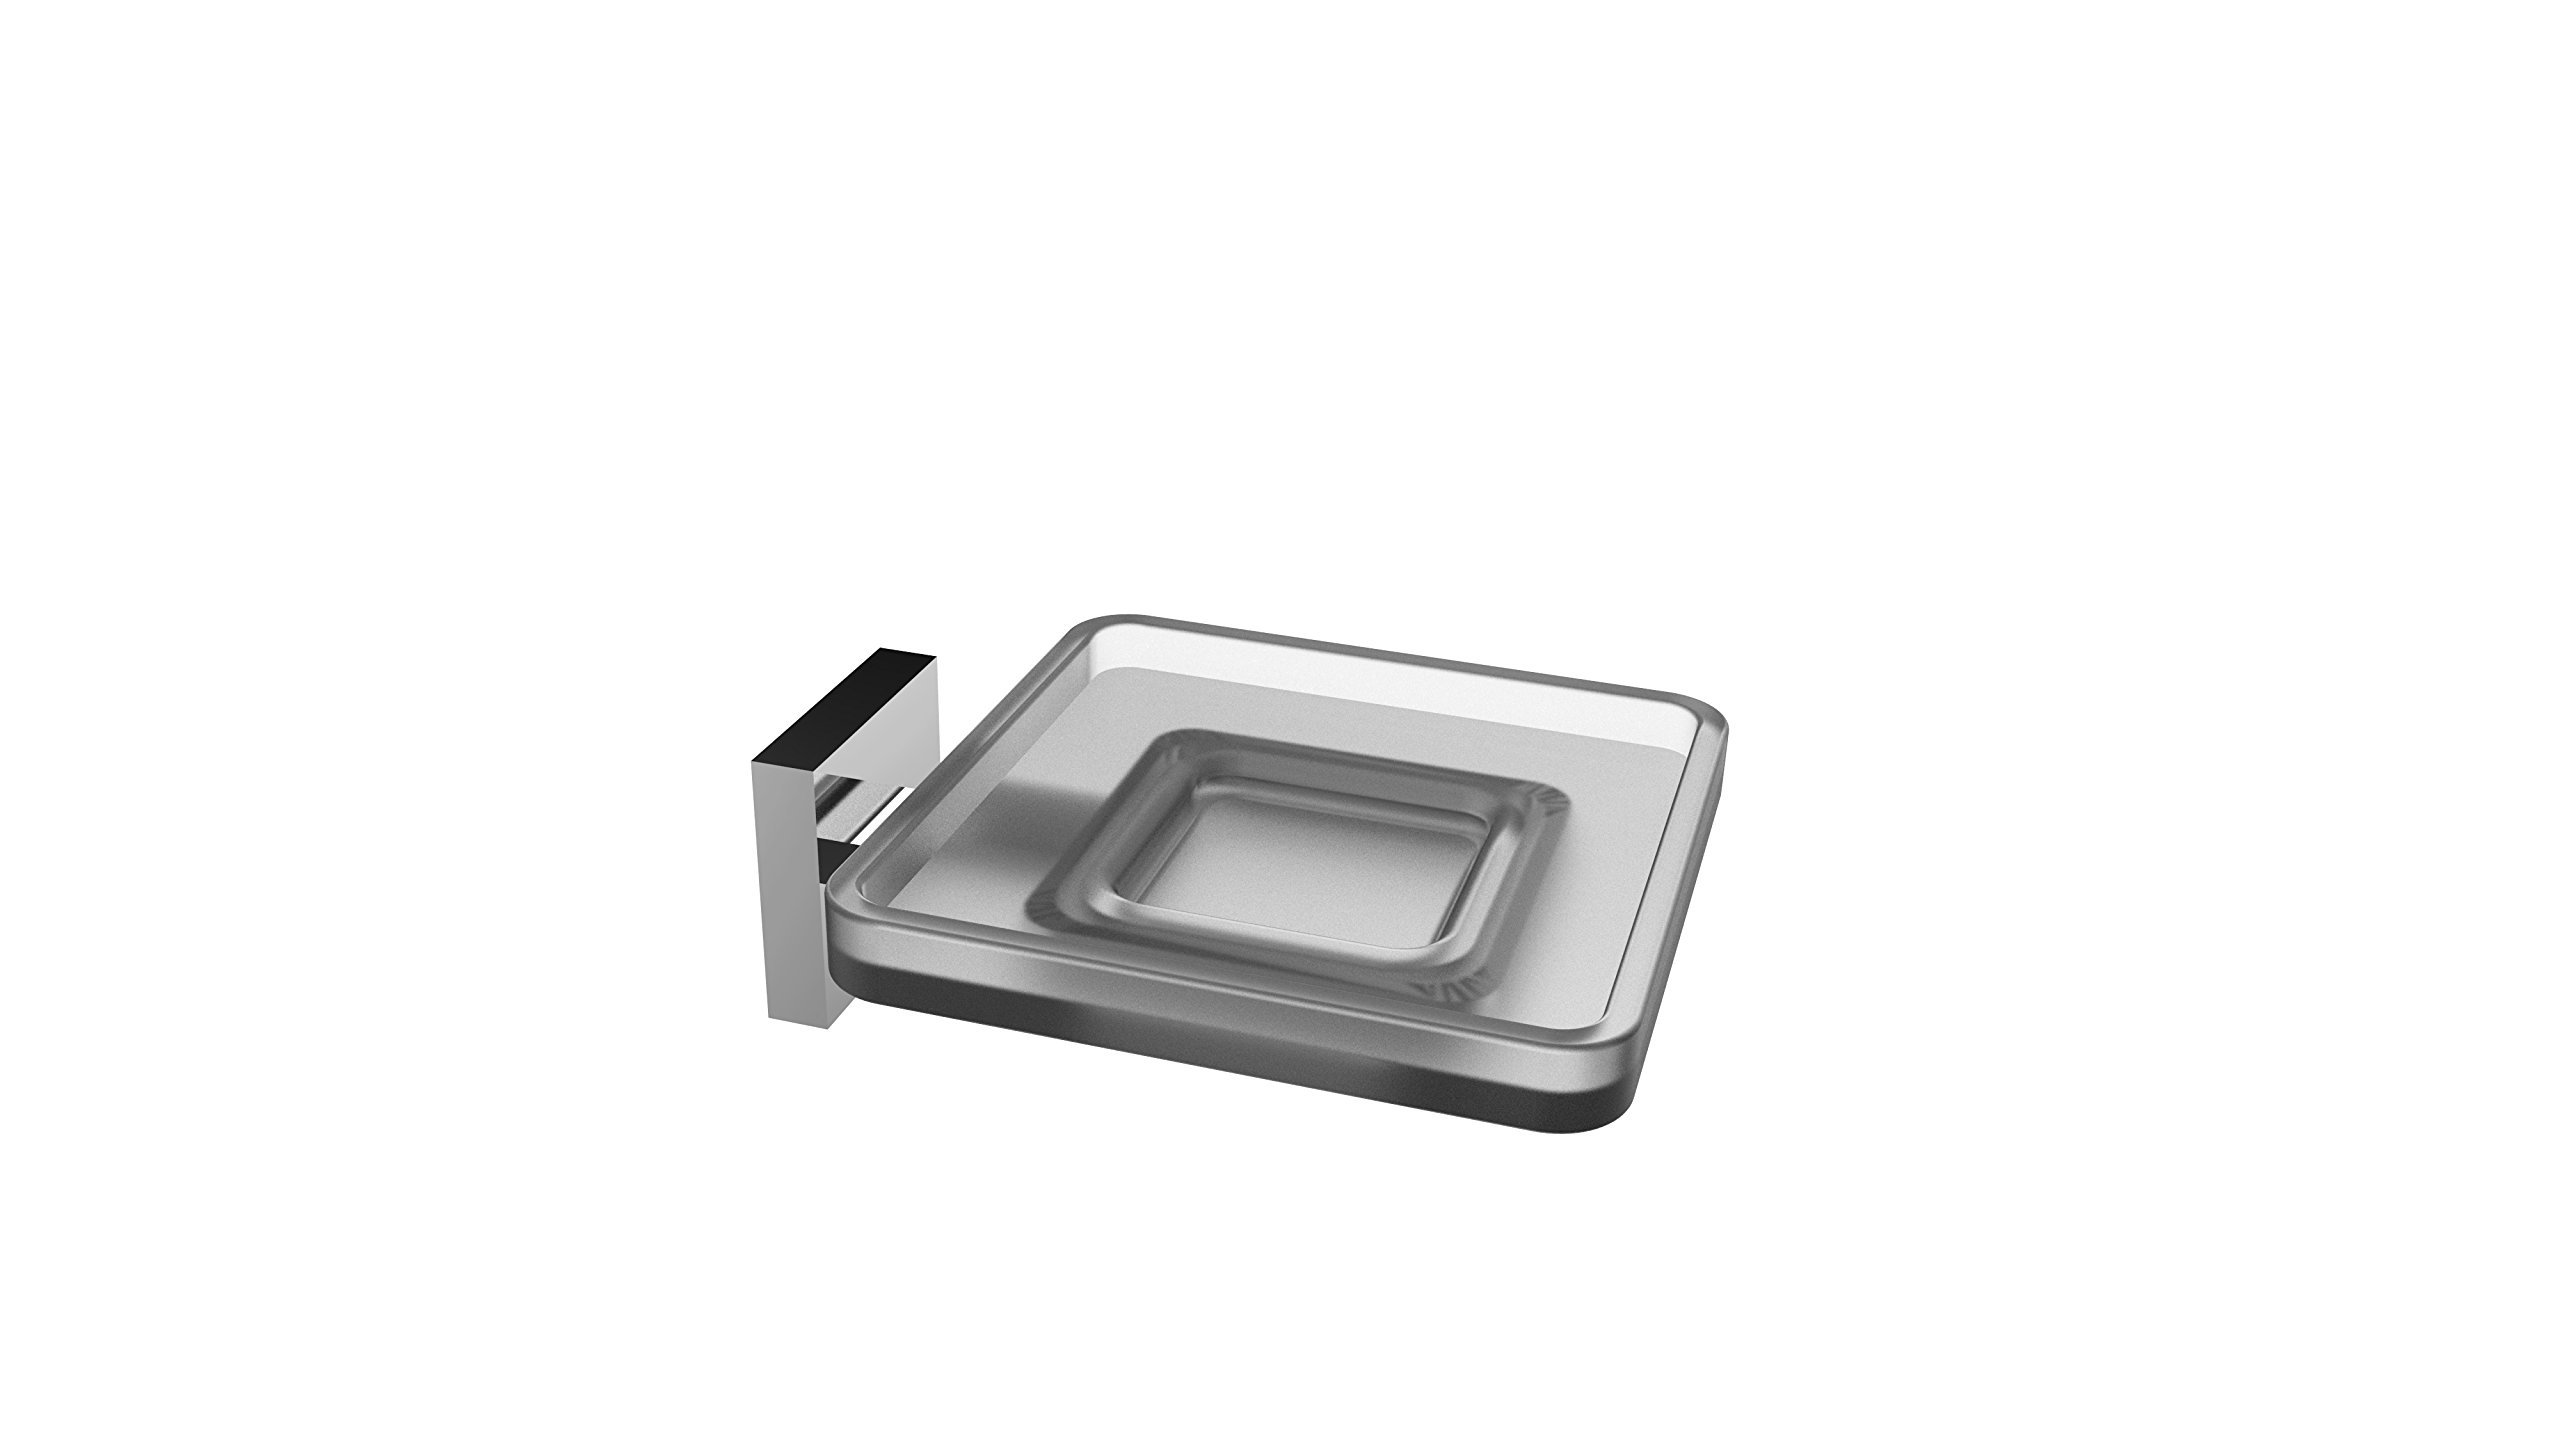 Eviva Evac810Bn Plater Glass Soap Holder Wall Mount (Brushed Nickel) Combination by Eviva